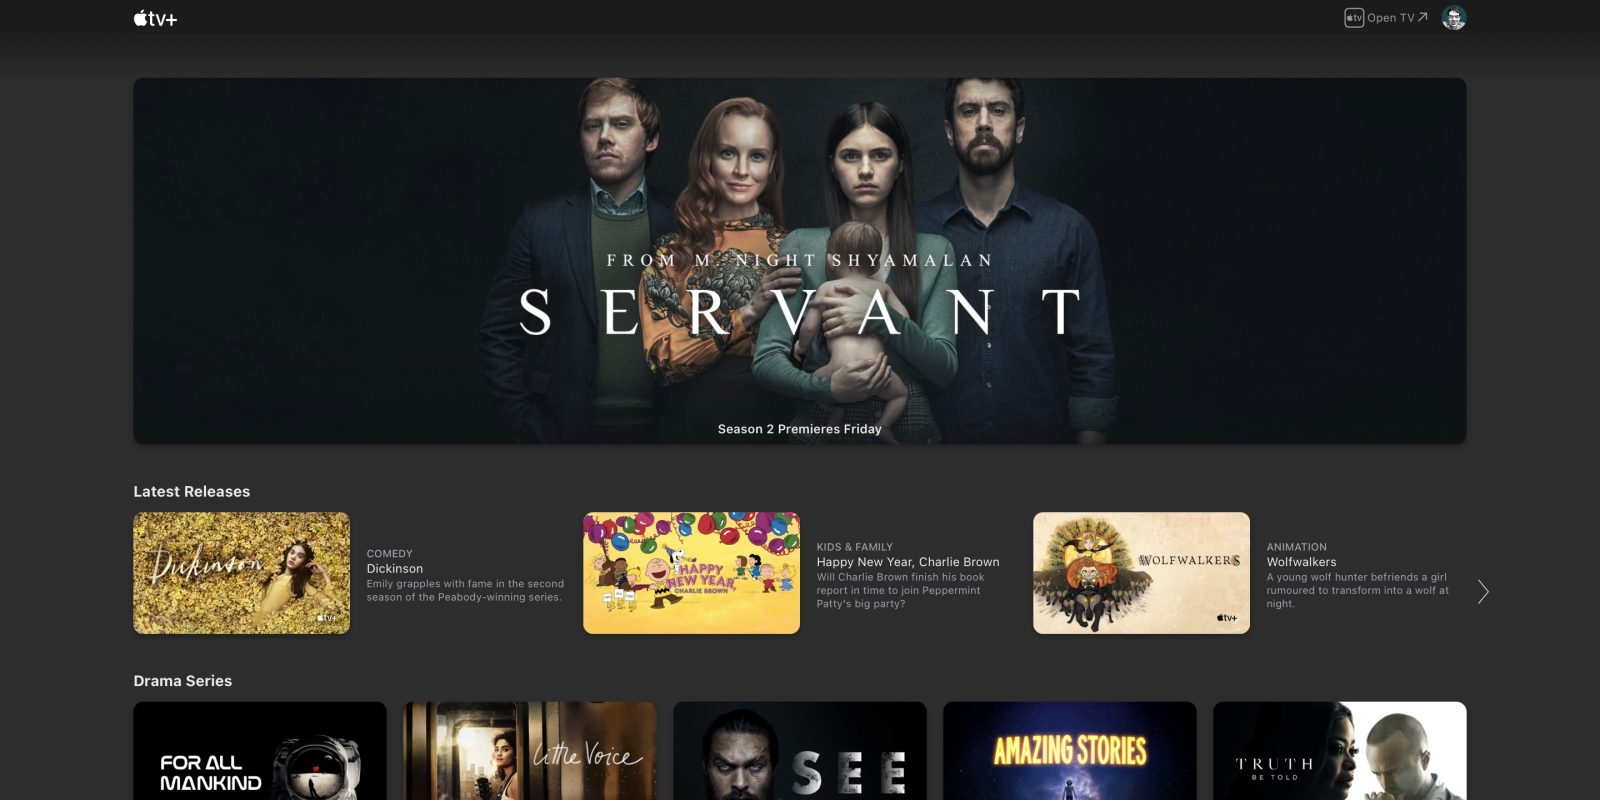 Apple TV+ website gets first UI update since the streaming service launched - 9to5Mac